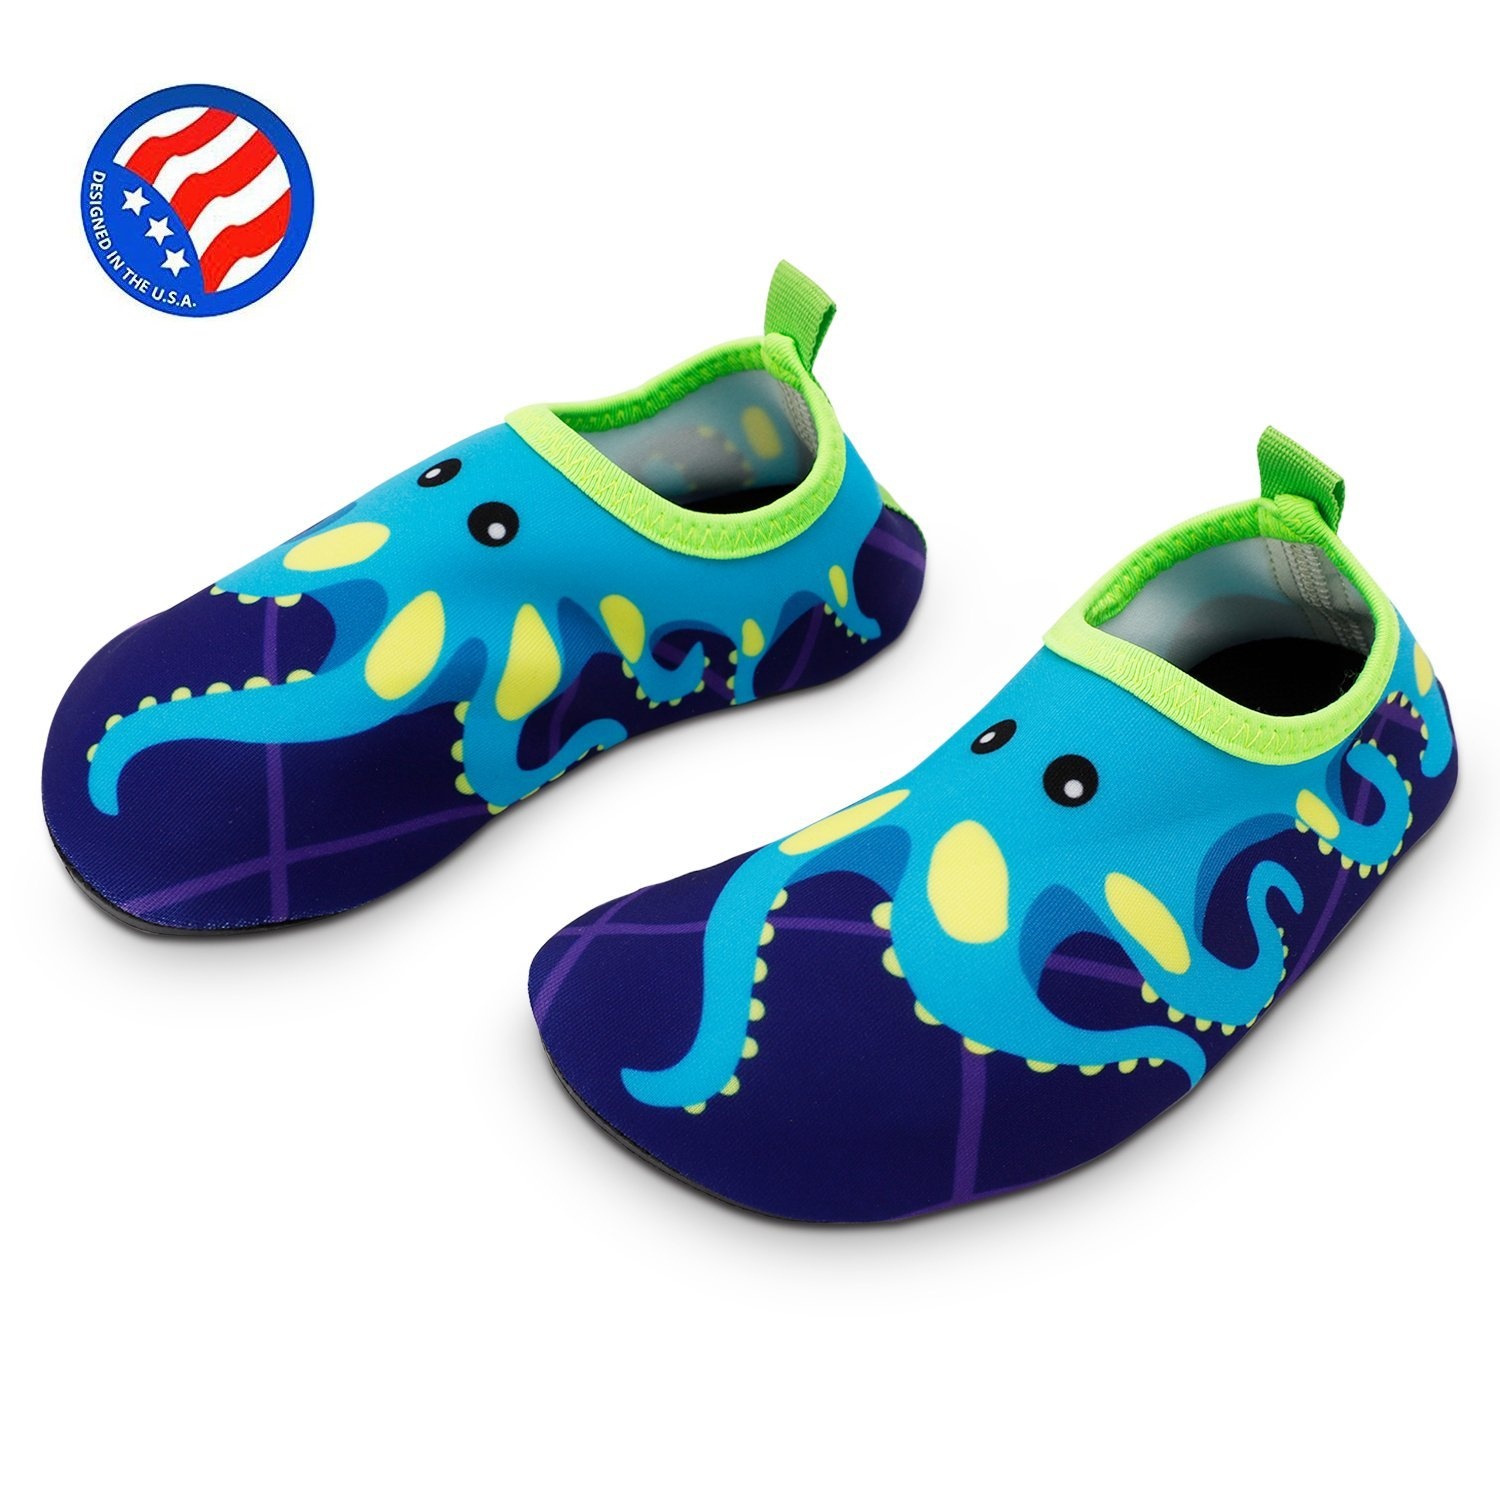 881391d92ea4 ... Aqua Socks for Boys Girls Toddler. null. null. Get Quotations · Bigib  Toddler Kids Swim Water Shoes Quick Dry Non-Slip Water Skin Barefoot Sports  Shoes